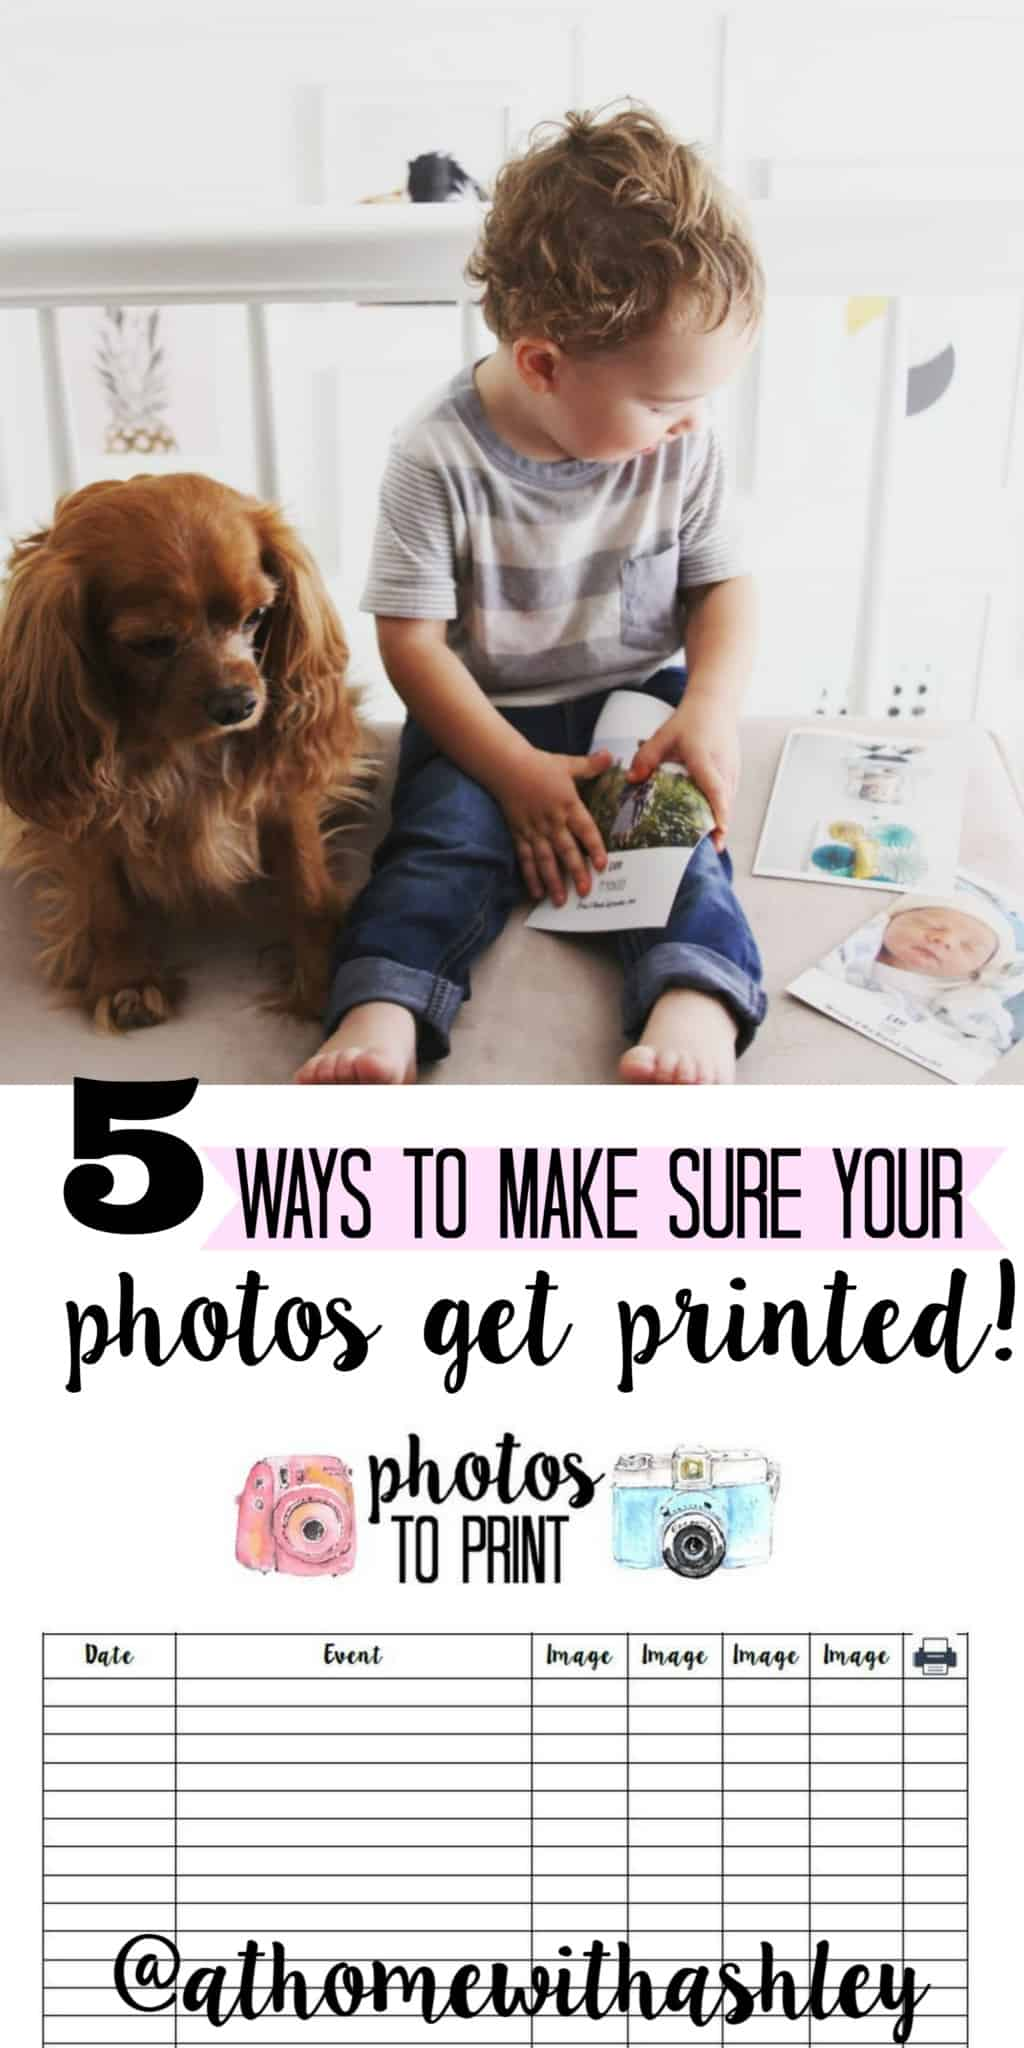 5-ways-to-make-sure-your-photos-get-printed